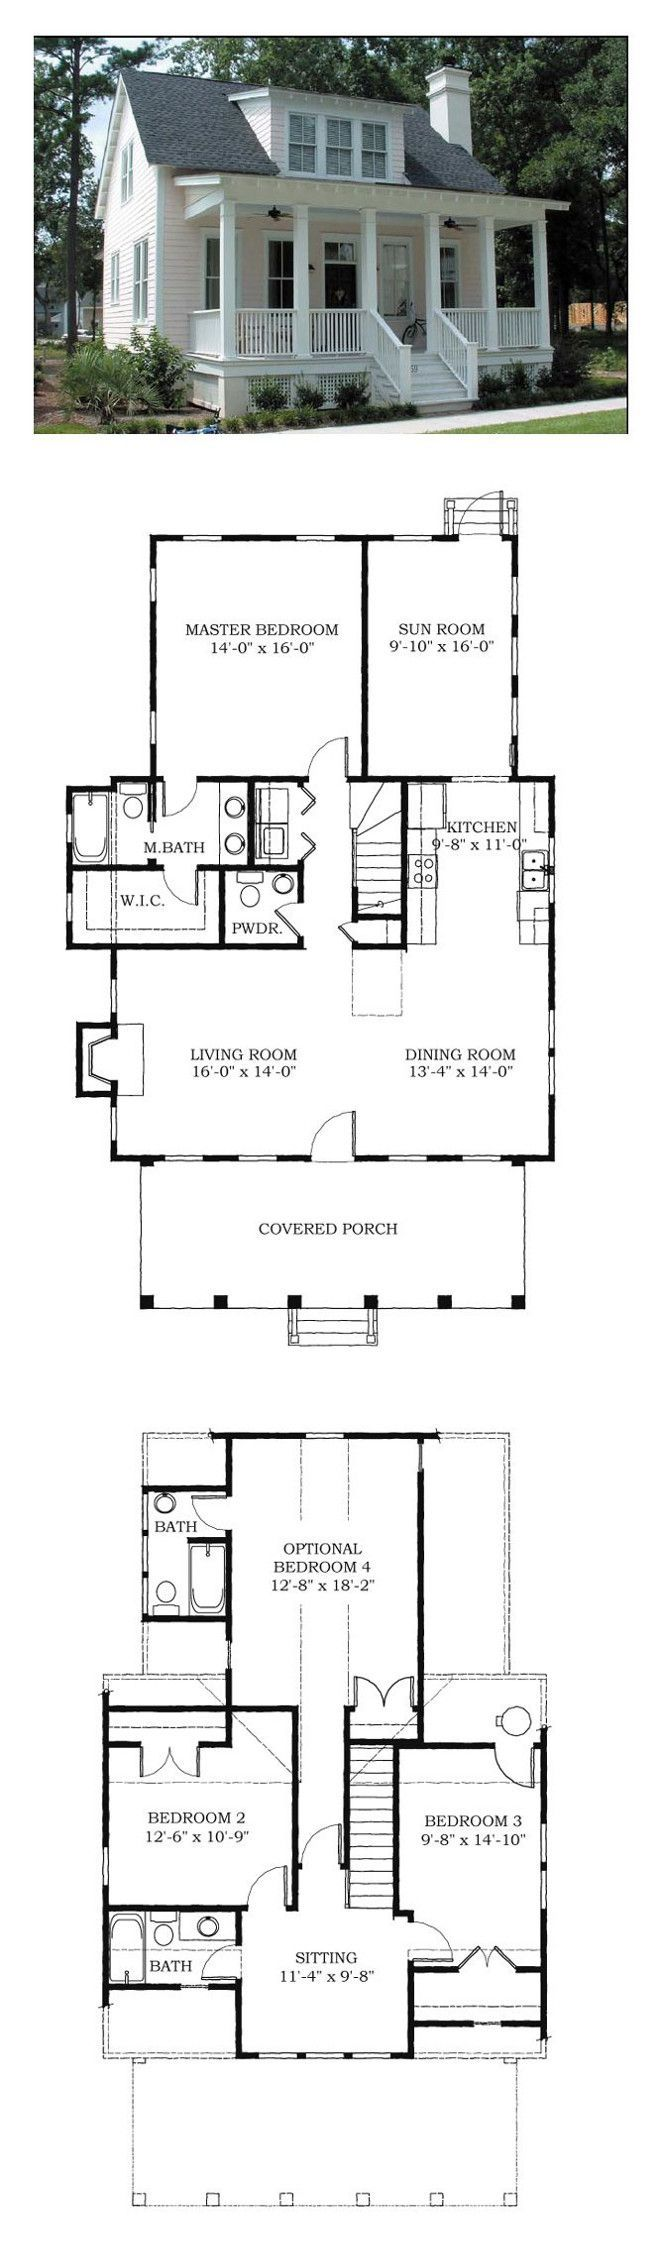 cottage floor plans via cool house plans - Cottage Floor Plans